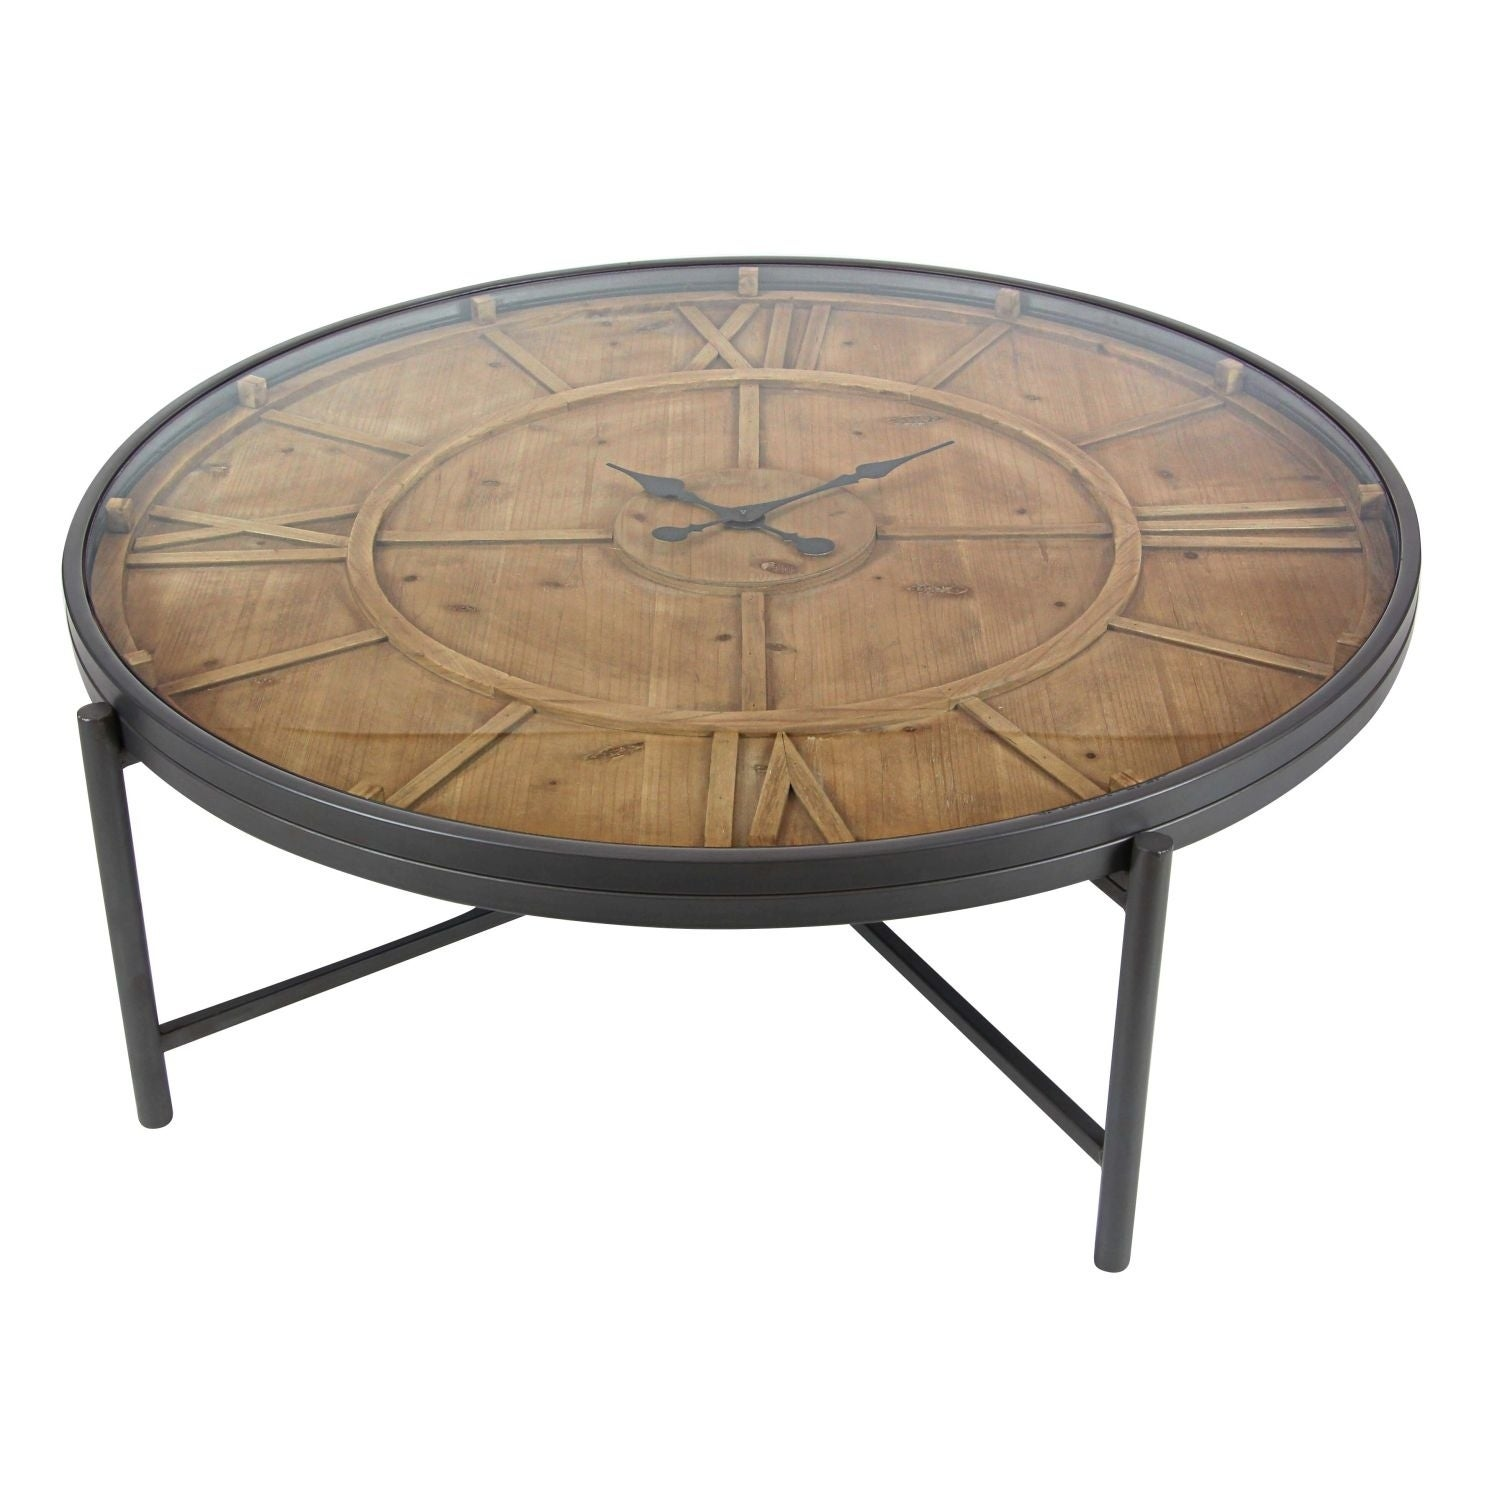 Clock Coffee Table 41 Inches Wide